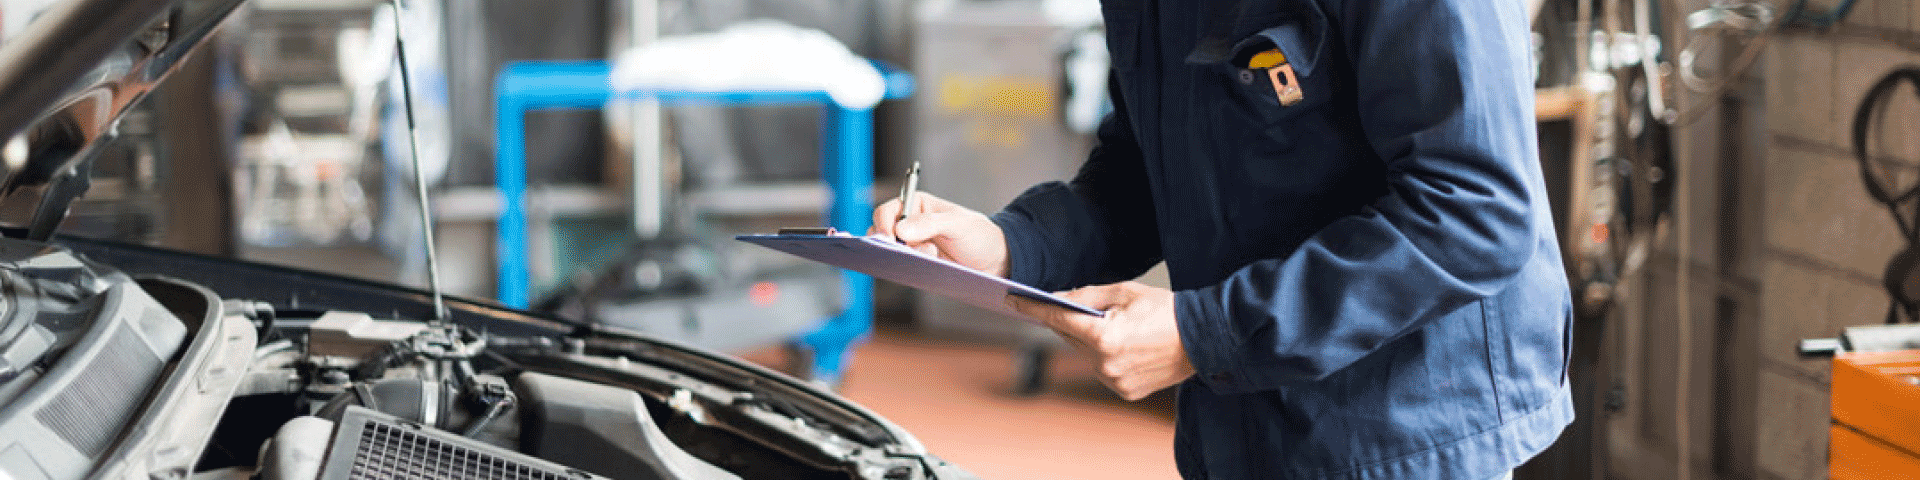 Image of a mechanic in a blue jacket, writing on a clip board while looking at a car's engine.